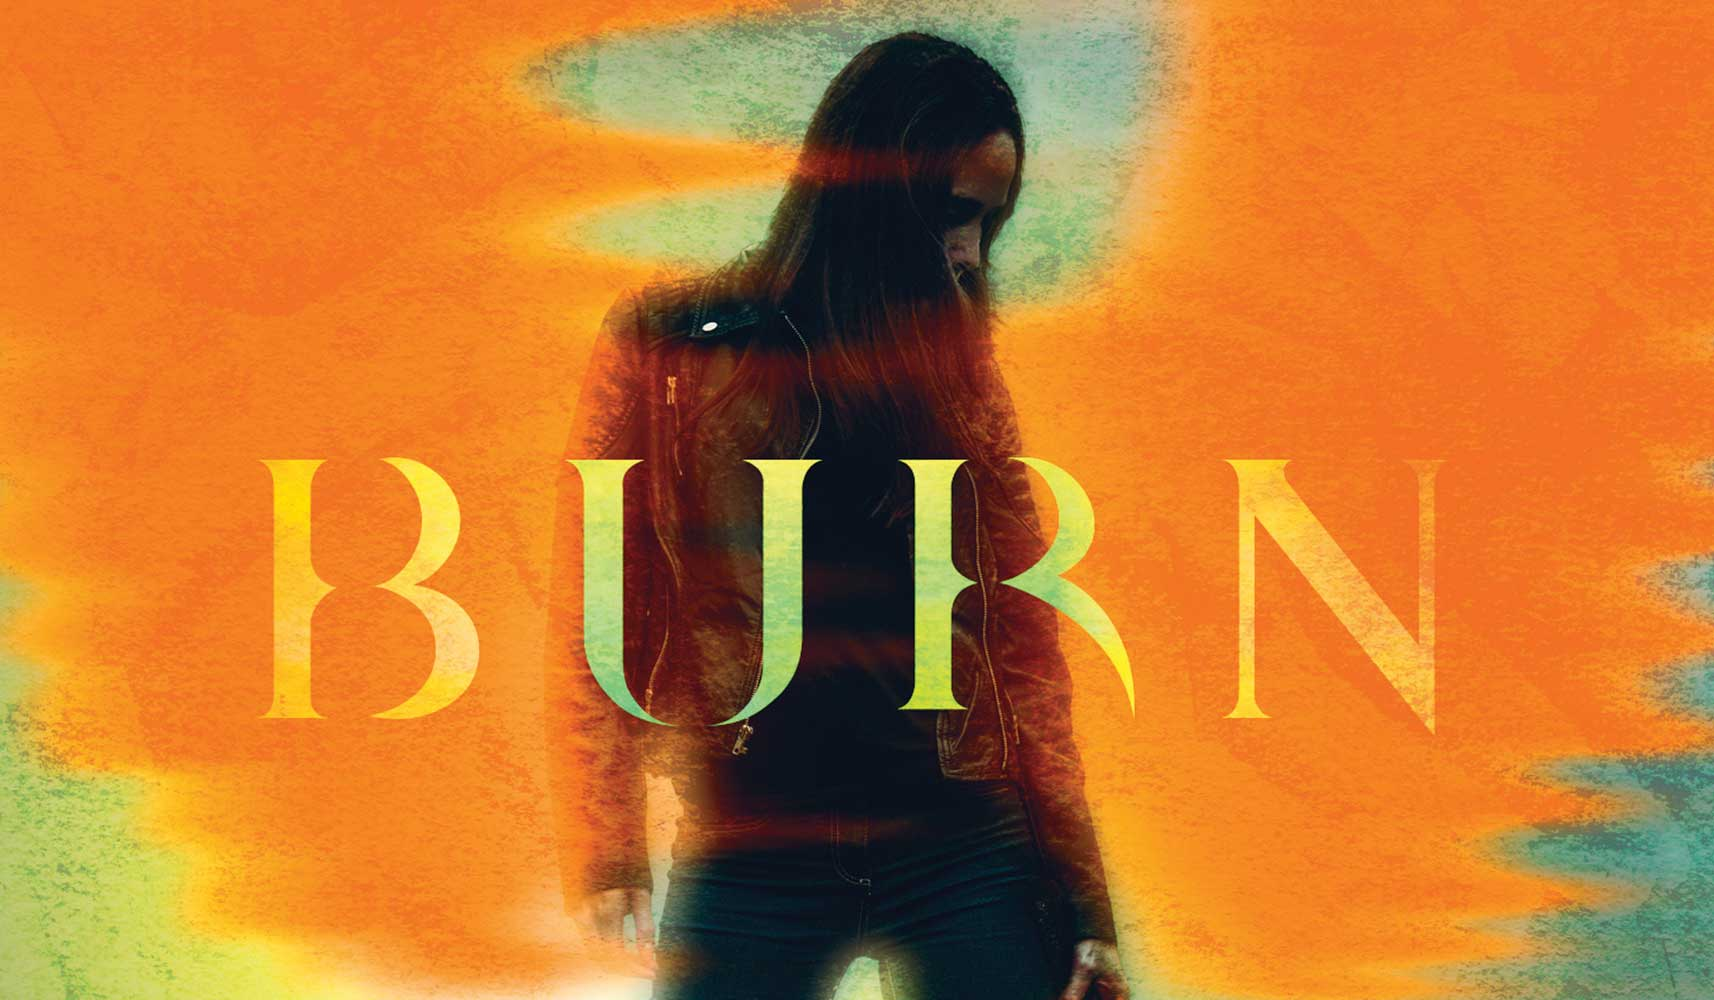 Detail from Burn cover